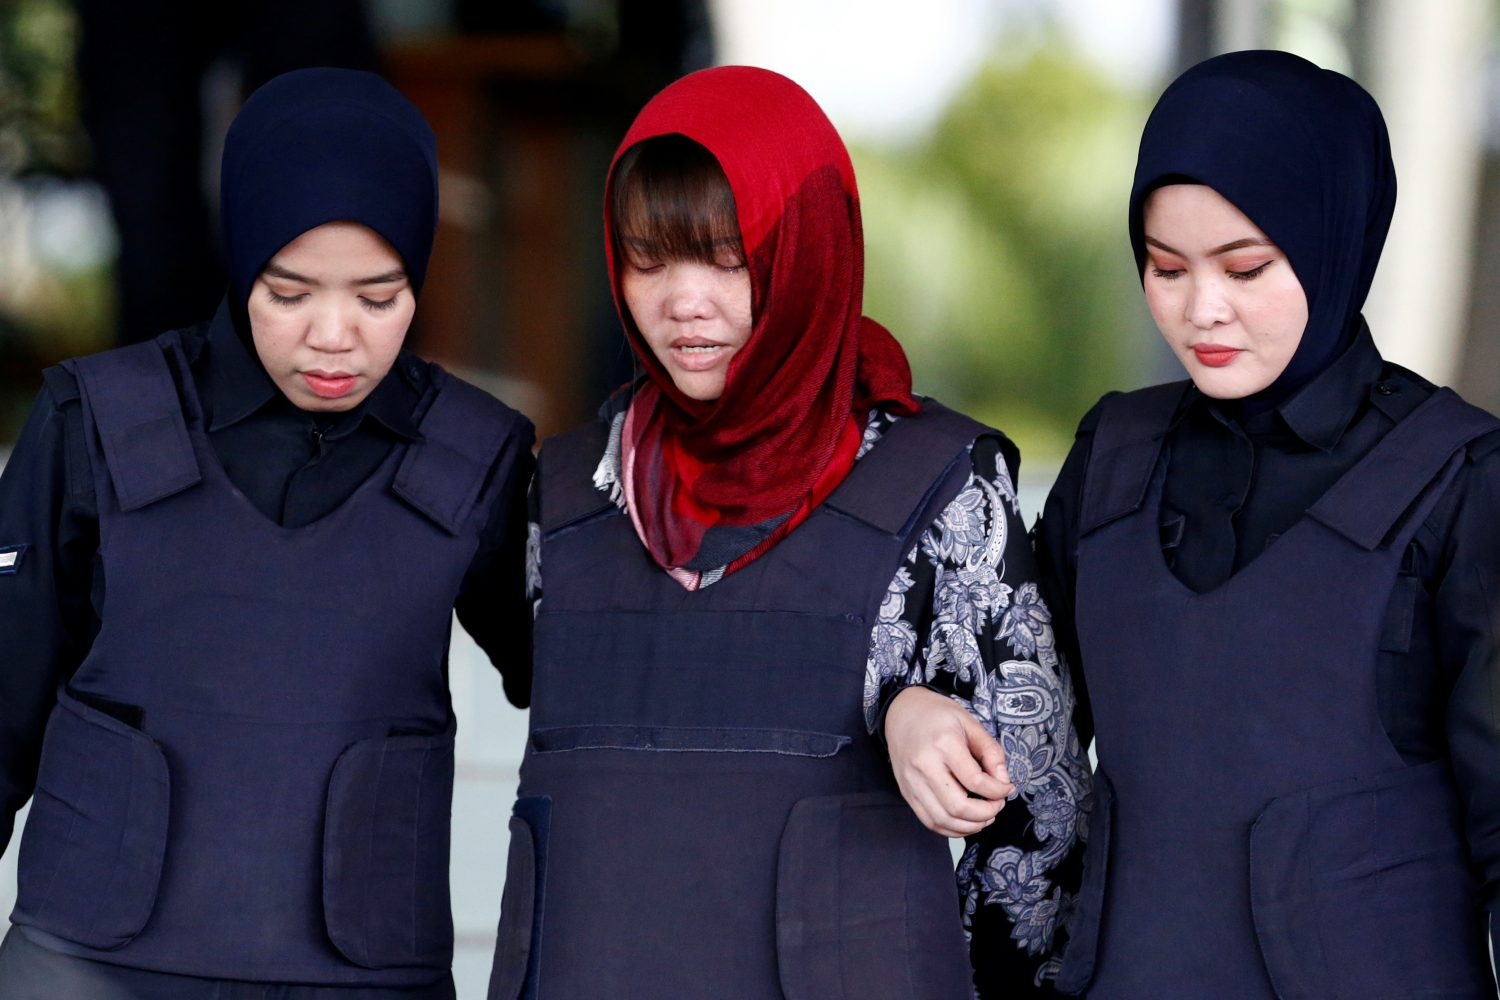 FILE PHOTO: Vietnamese Doan Thi Huong, who was a suspect in the murder case of North Korean leader's half brother Kim Jong Nam, leaves the Shah Alam High Court on the outskirts of Kuala Lumpur, Malaysia March 14, 2019. REUTERS/Lai Seng Sin